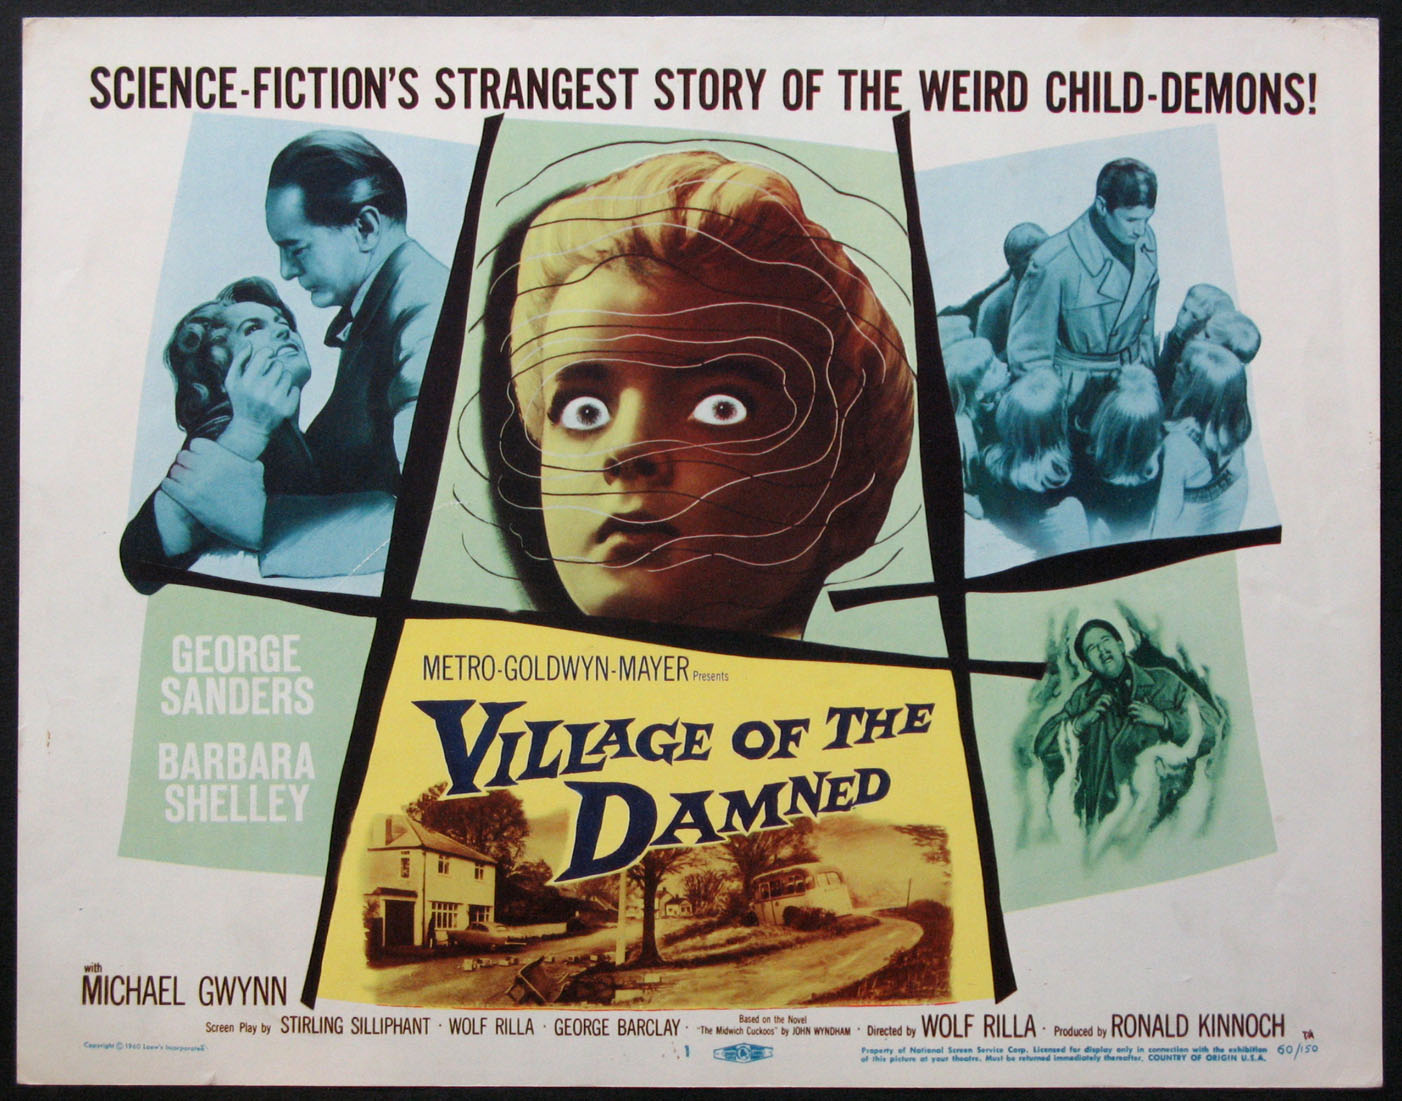 VILLAGE OF THE DAMNED @ FilmPosters.com